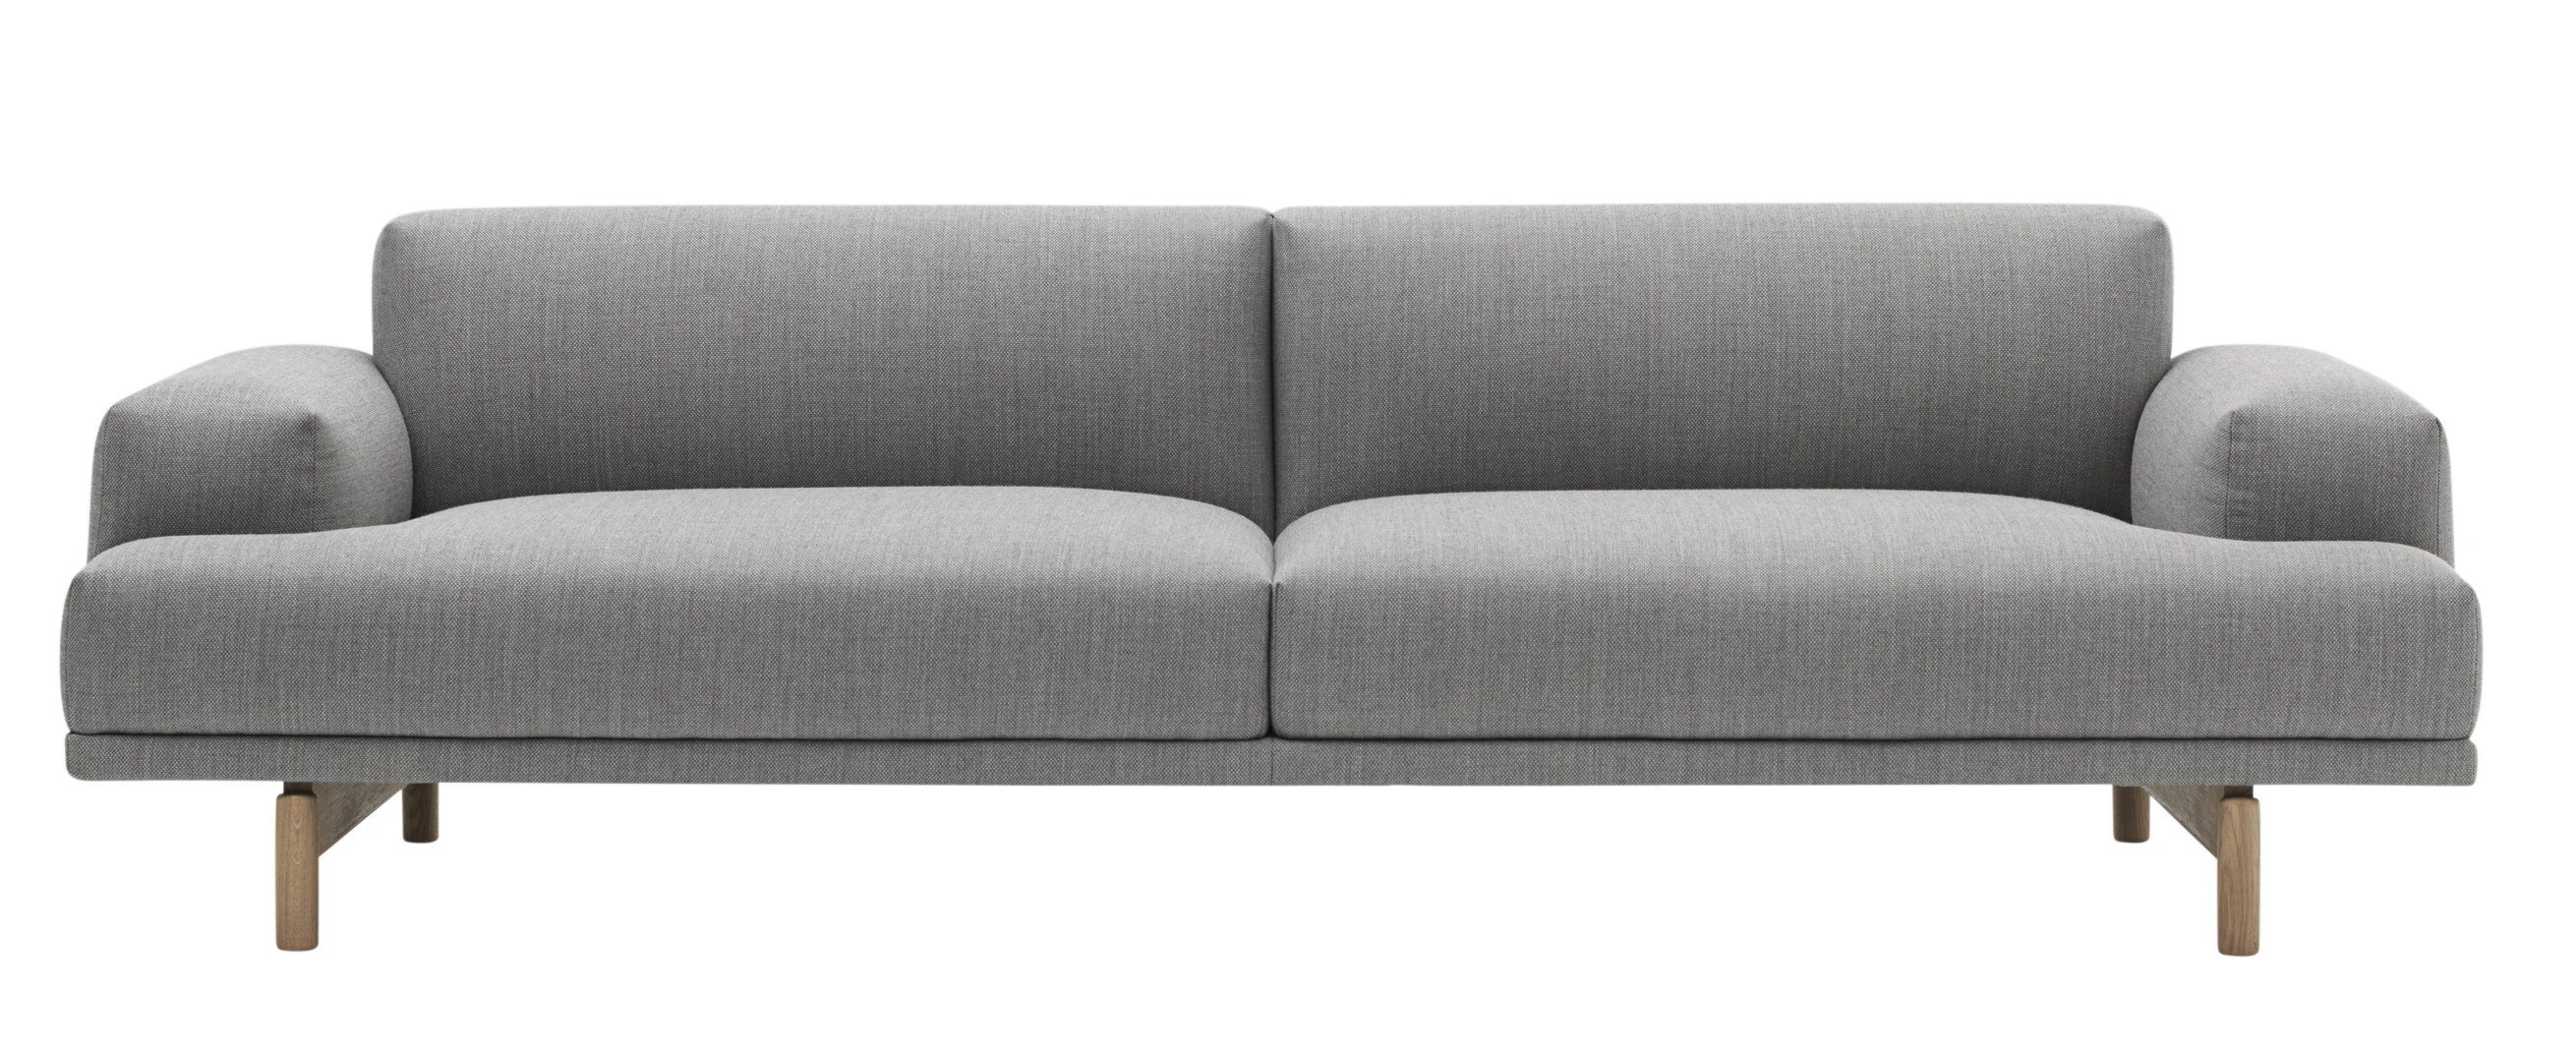 muuto sofa bed with pullout hagembler i tre perfect affordable cheap watt stvsuger